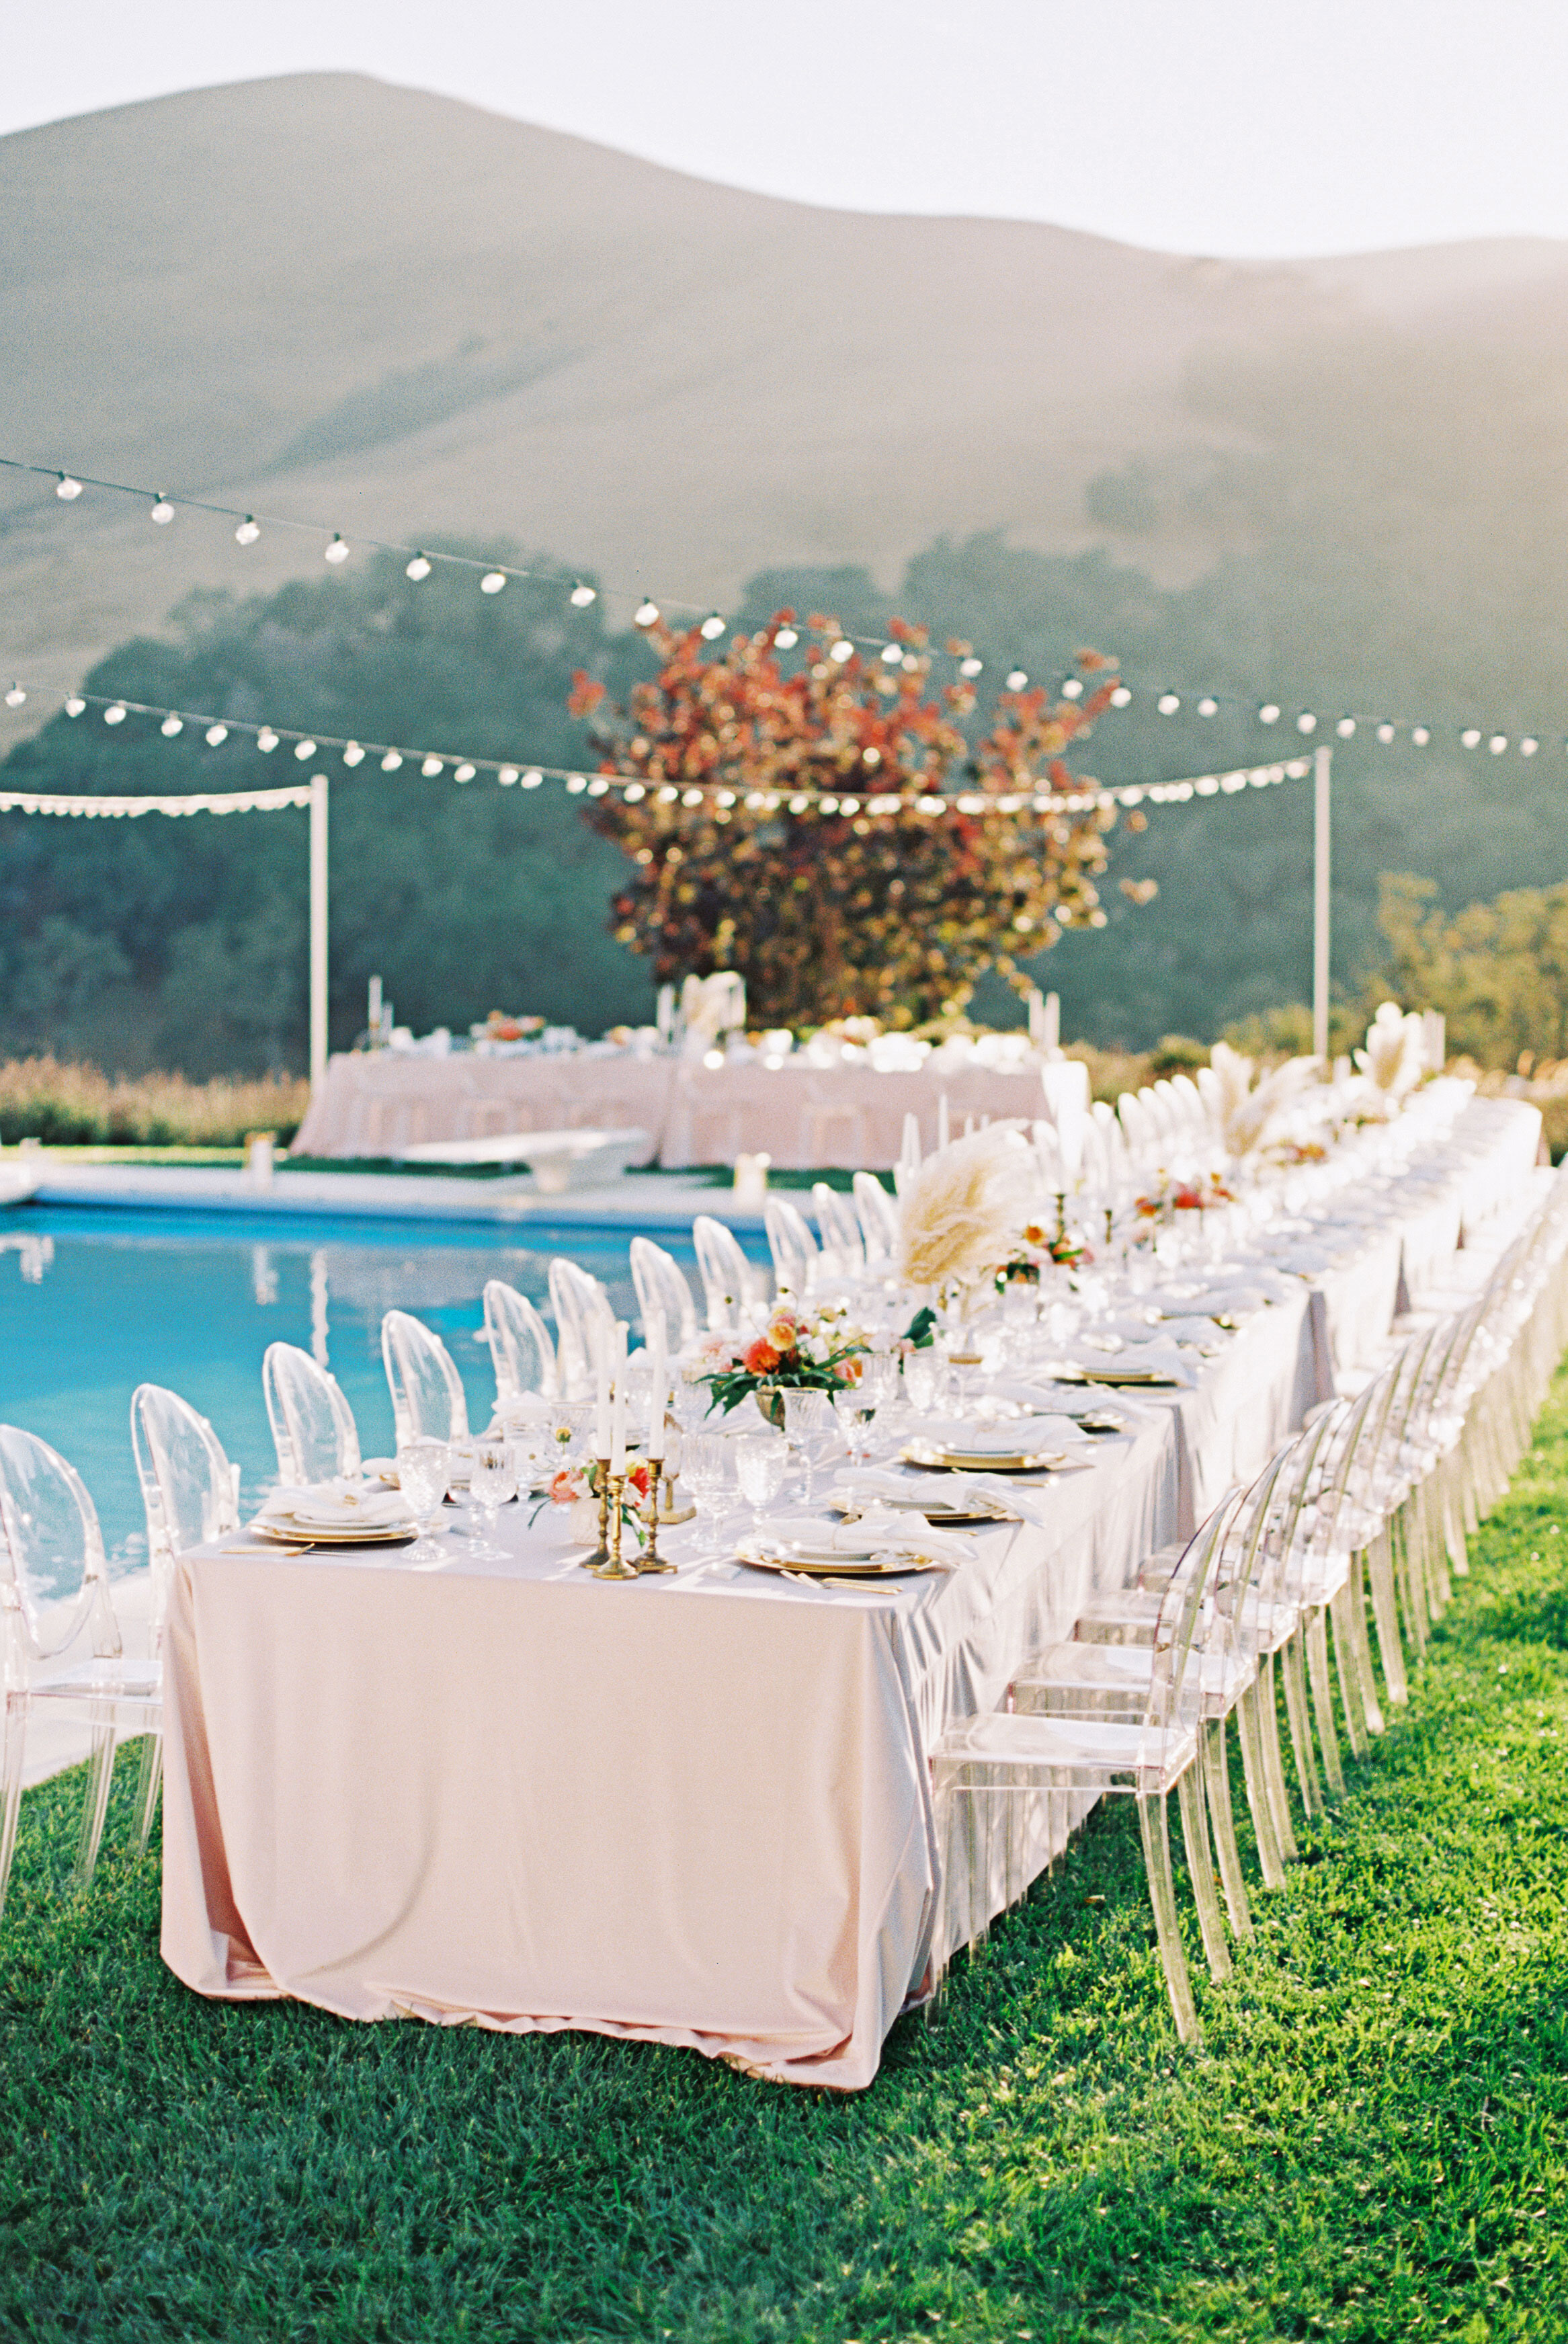 7 Things to Consider Before You Start Planning Your Poolside Wedding